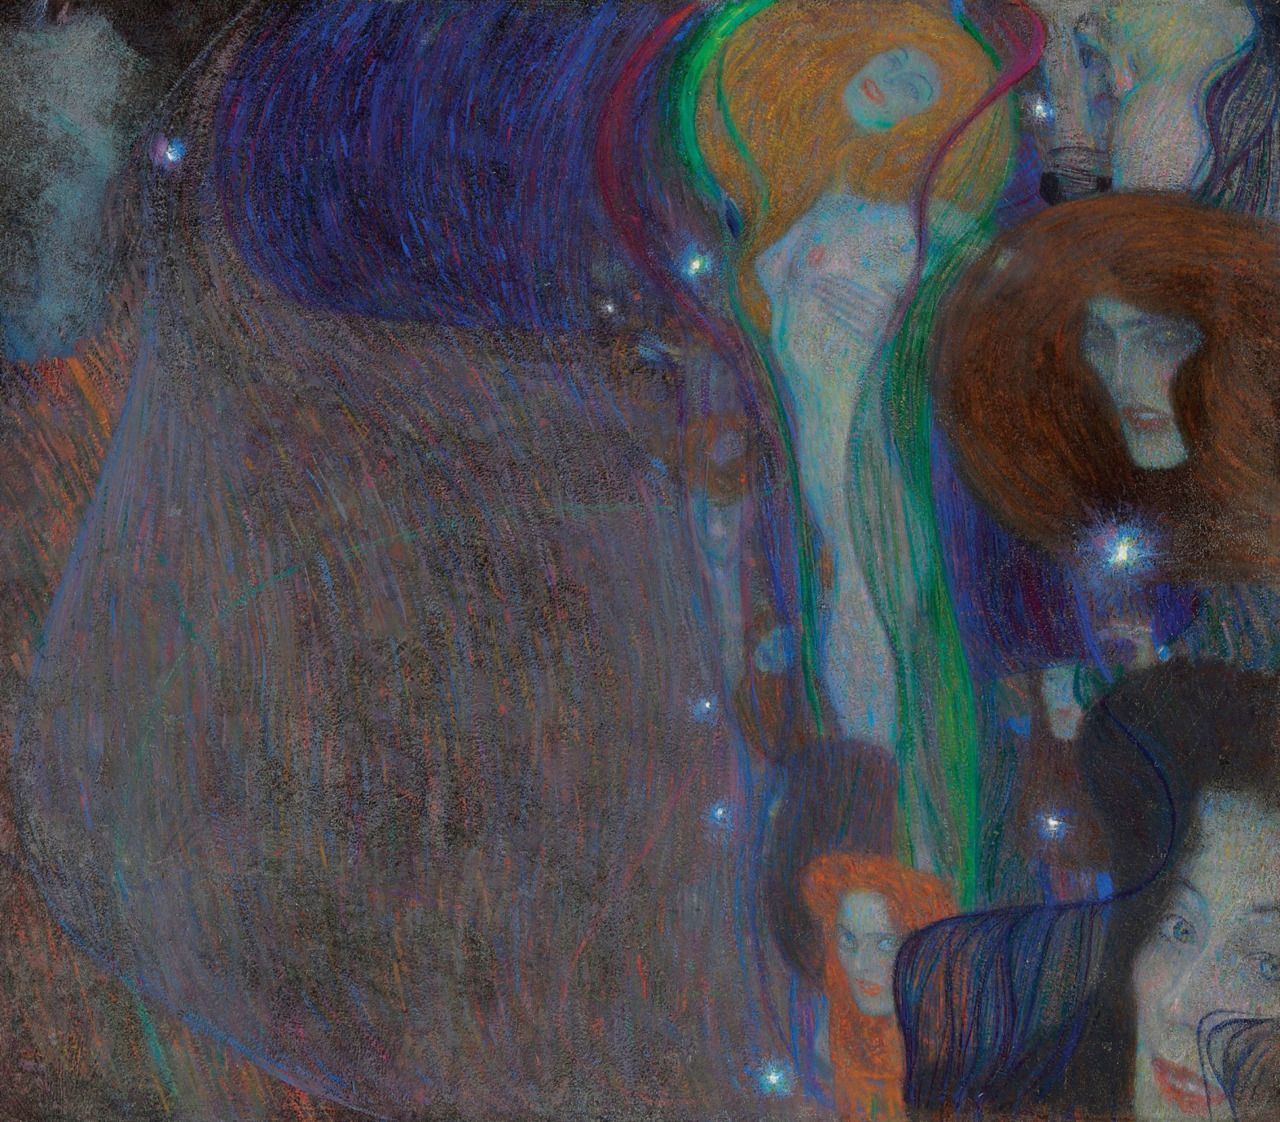 Gustav Klimt - Irrlichter (Will-o'-the-Wisp) , 1903 Oil on board laid down on canvas Private collection